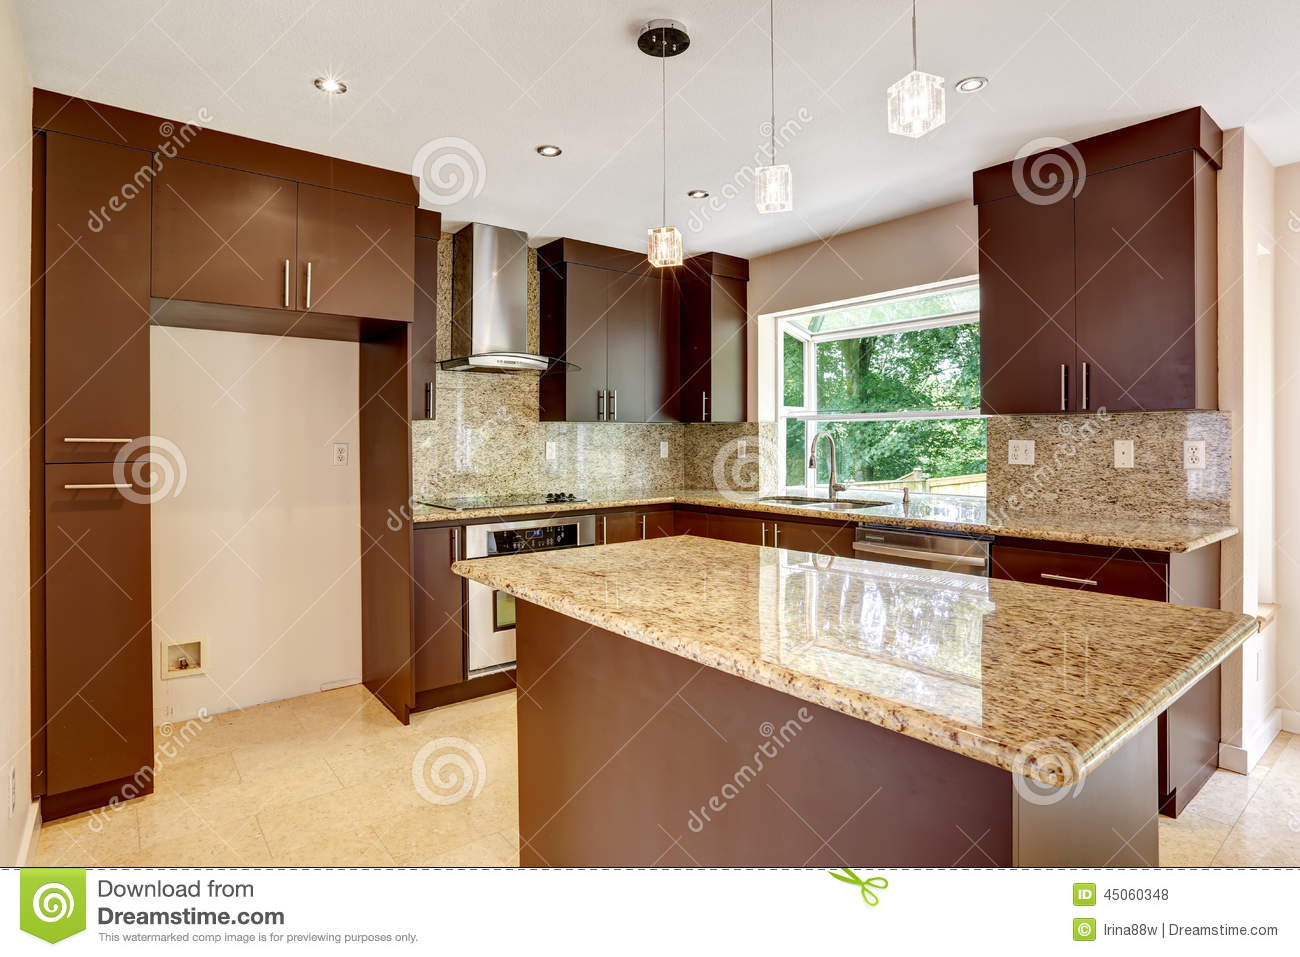 Modern Kitchen Room With Matte Brown Cabinets And Shiny